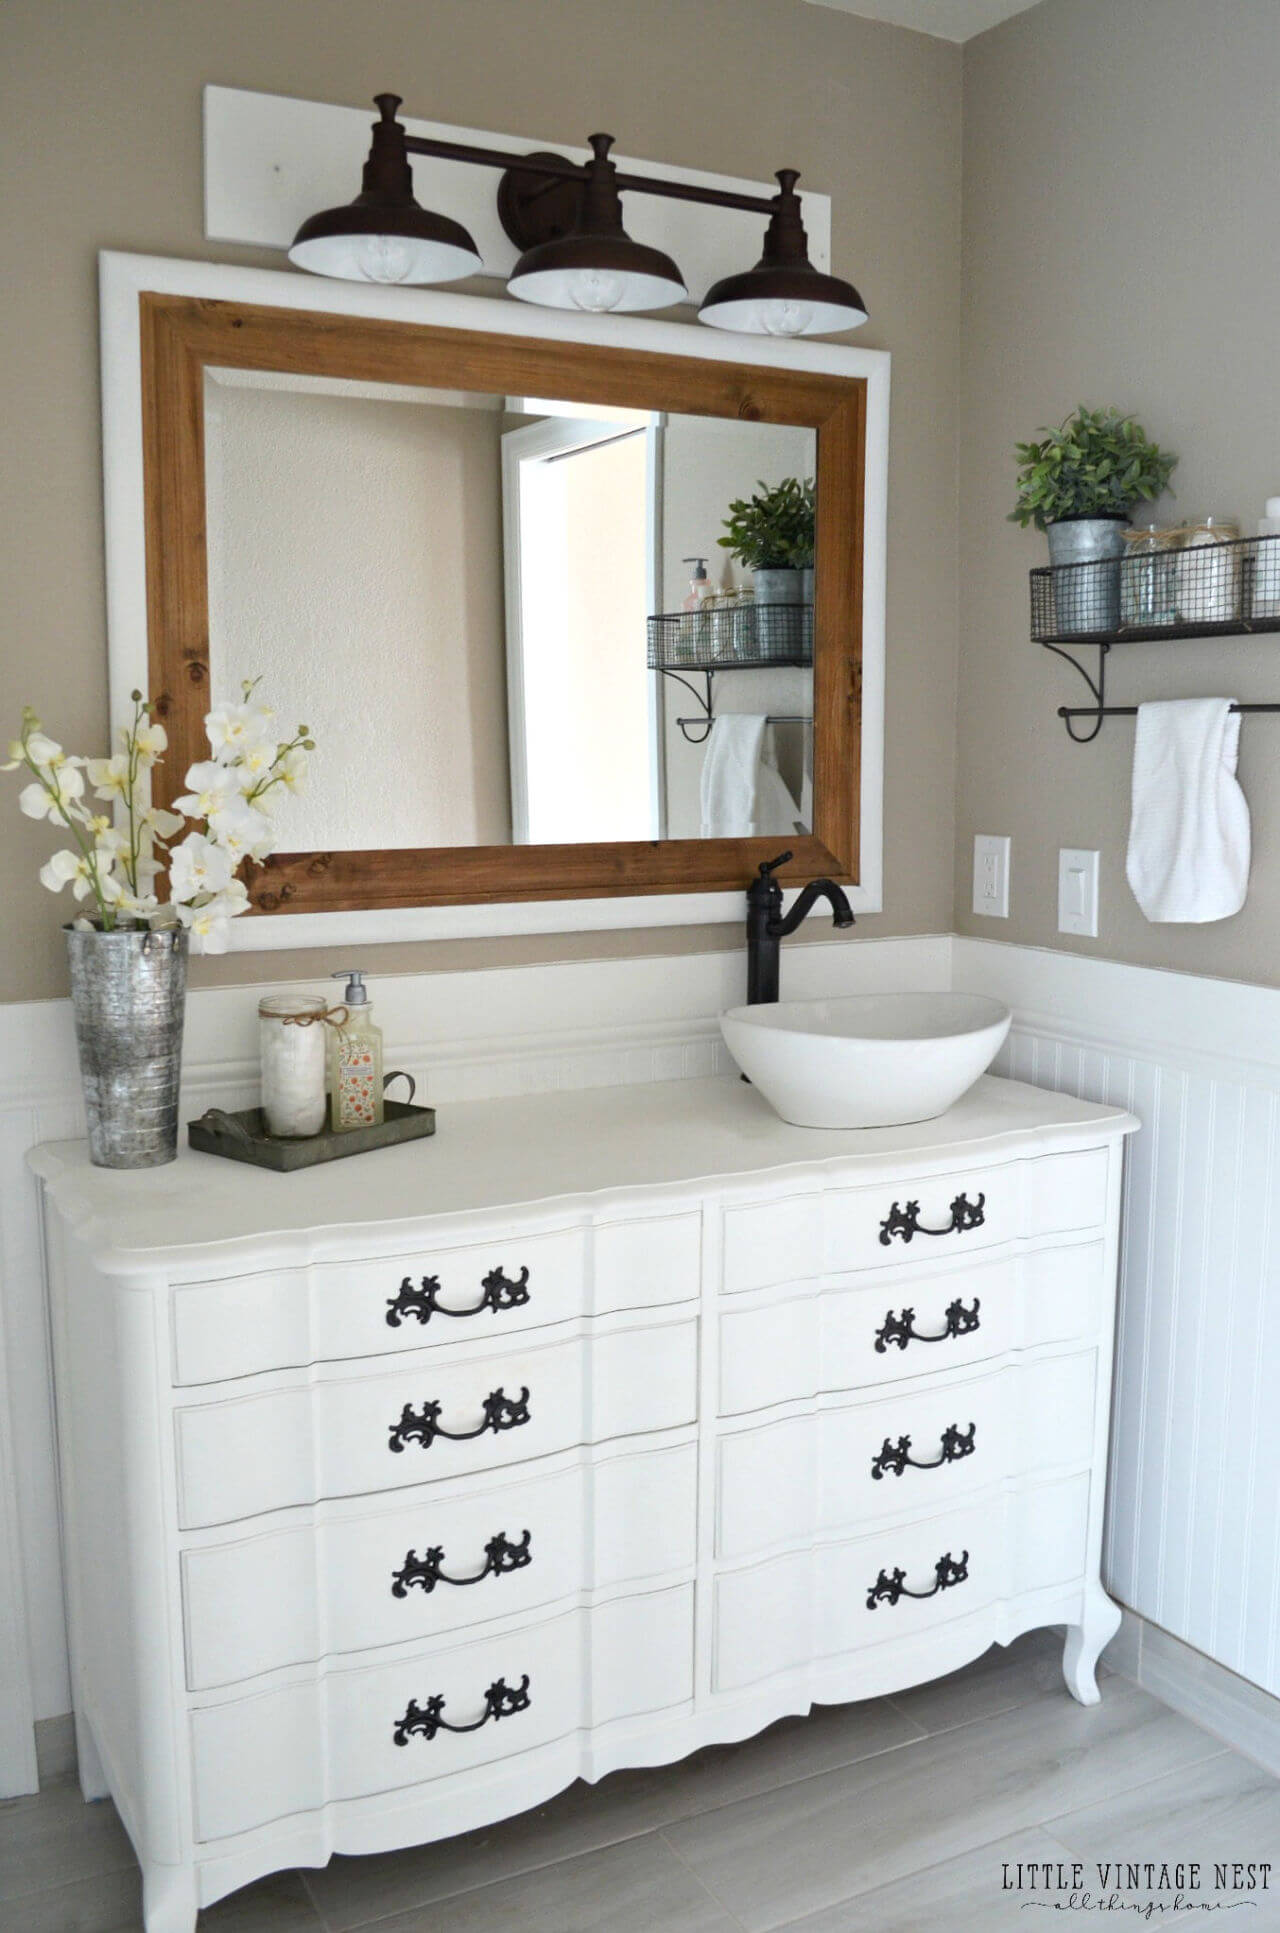 Small Bathroom With Expansive Mirror For Illusion